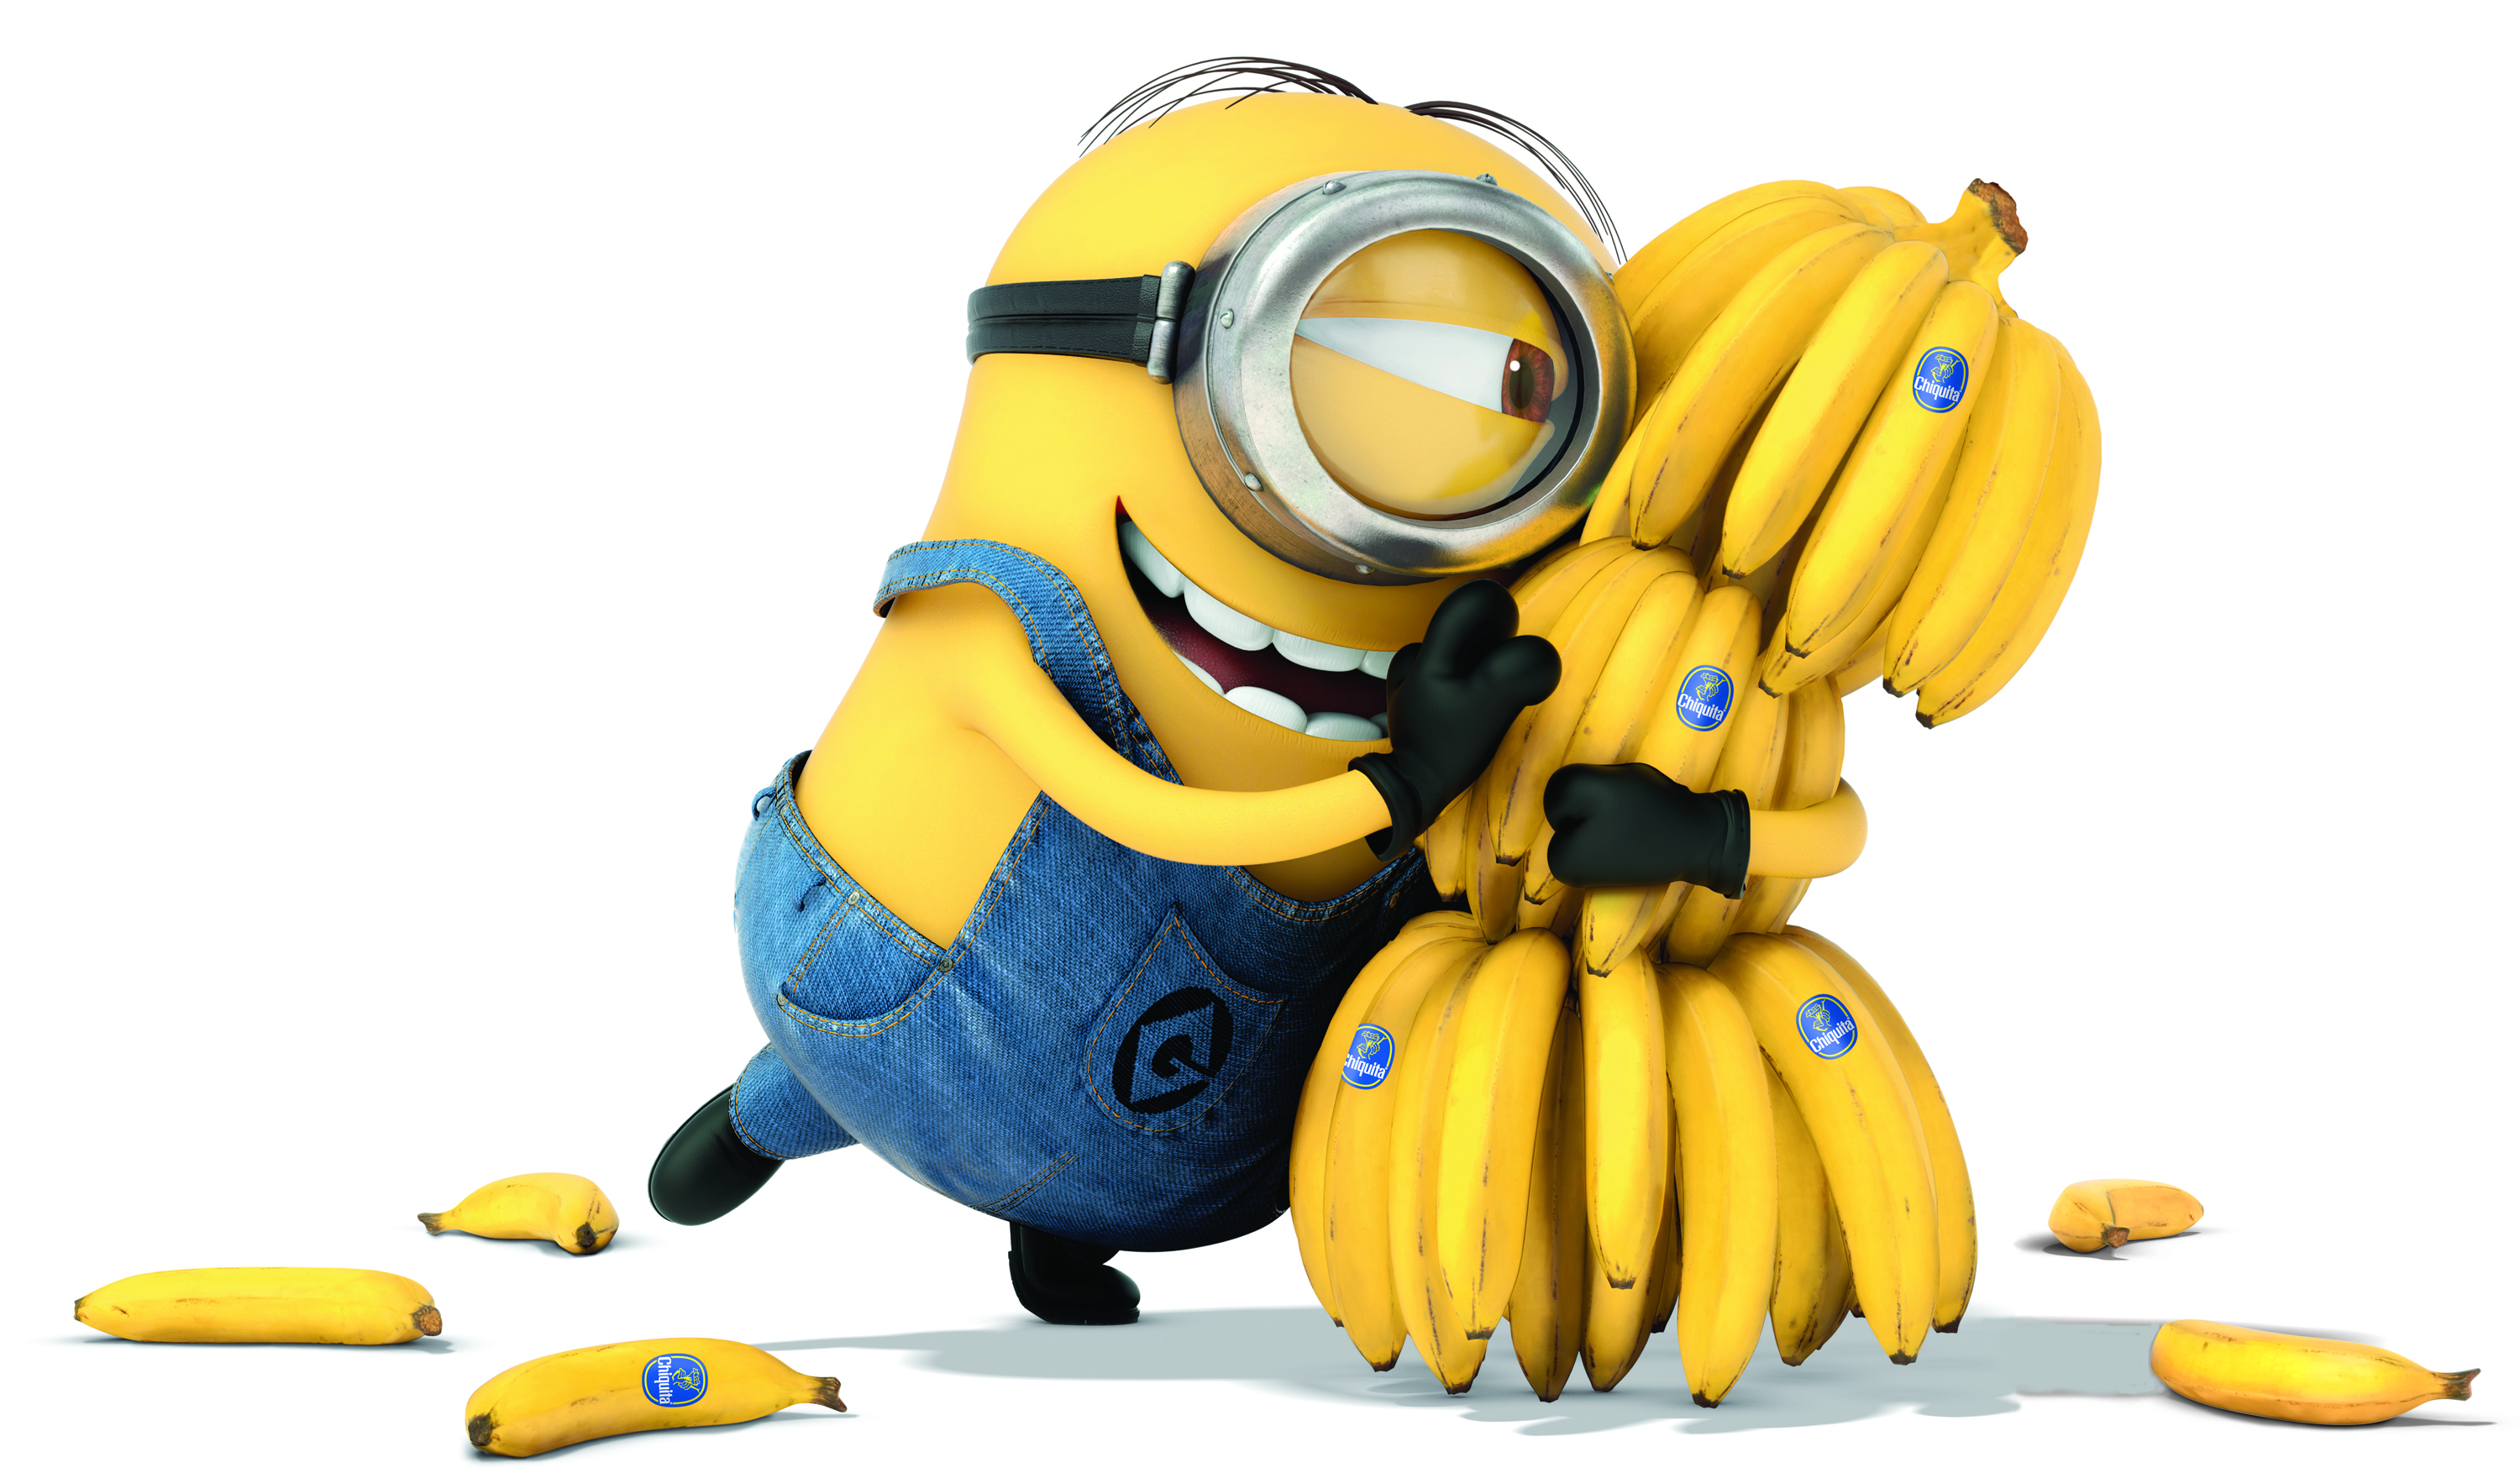 Banana Minion Rush - Banana Minion Rush